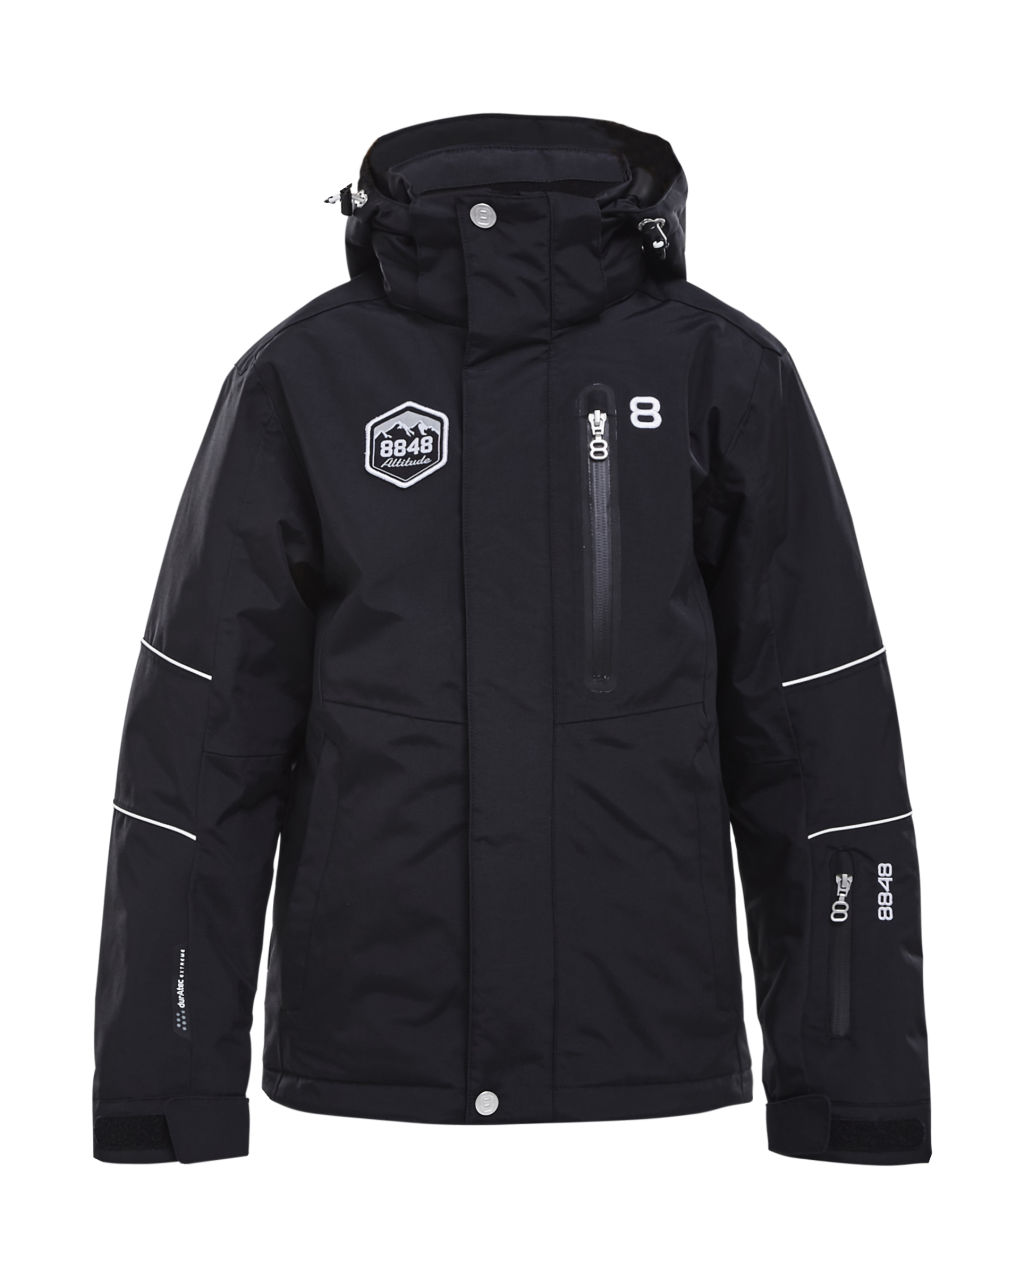 8848 Altitude Avanti Jacket Jr